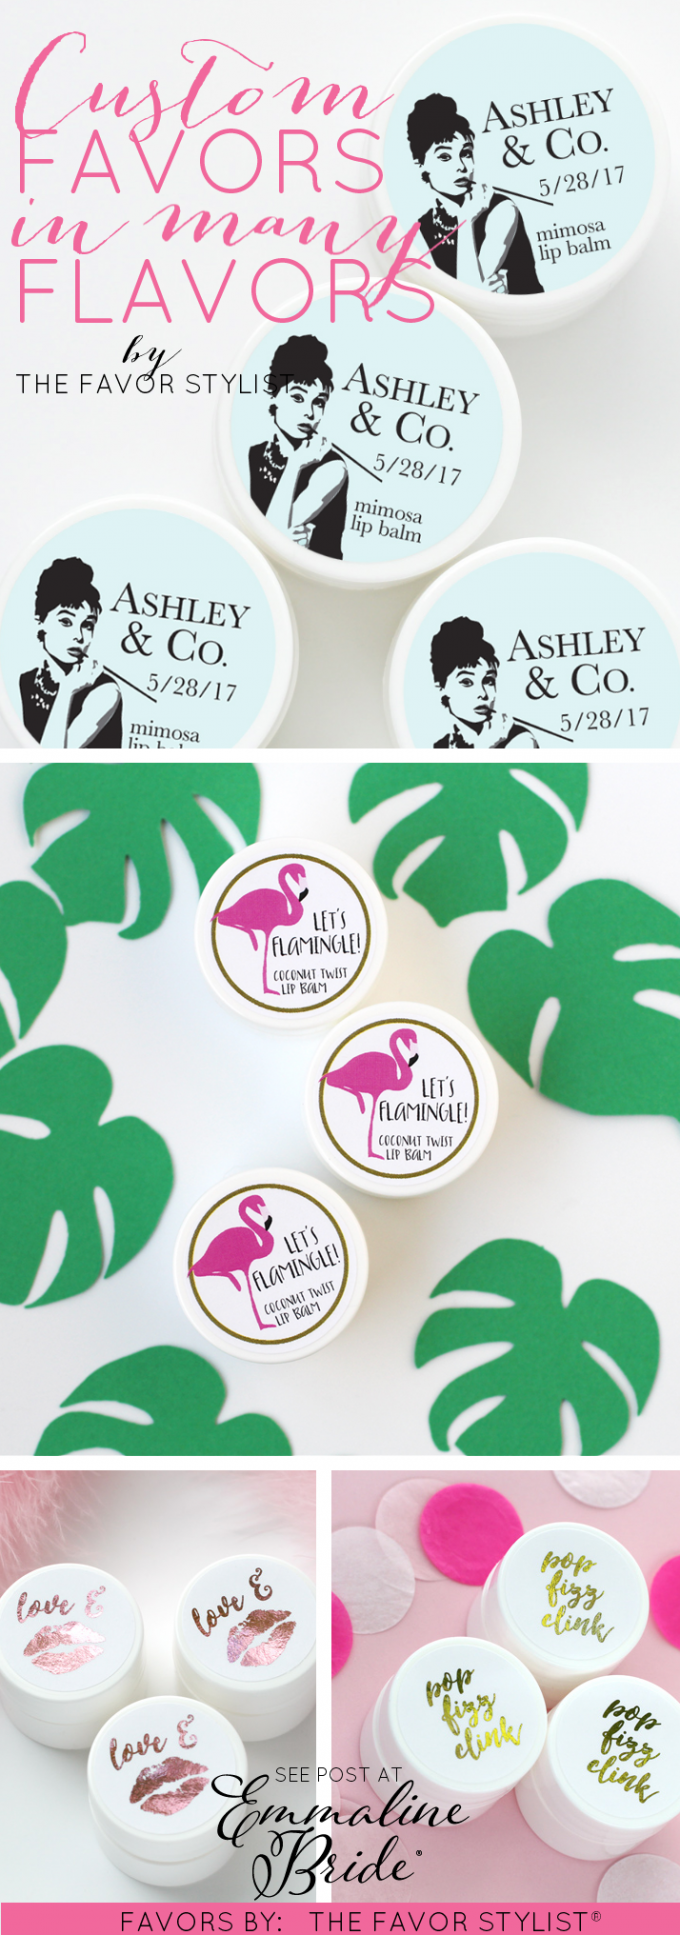 bachelorette party favors for guests